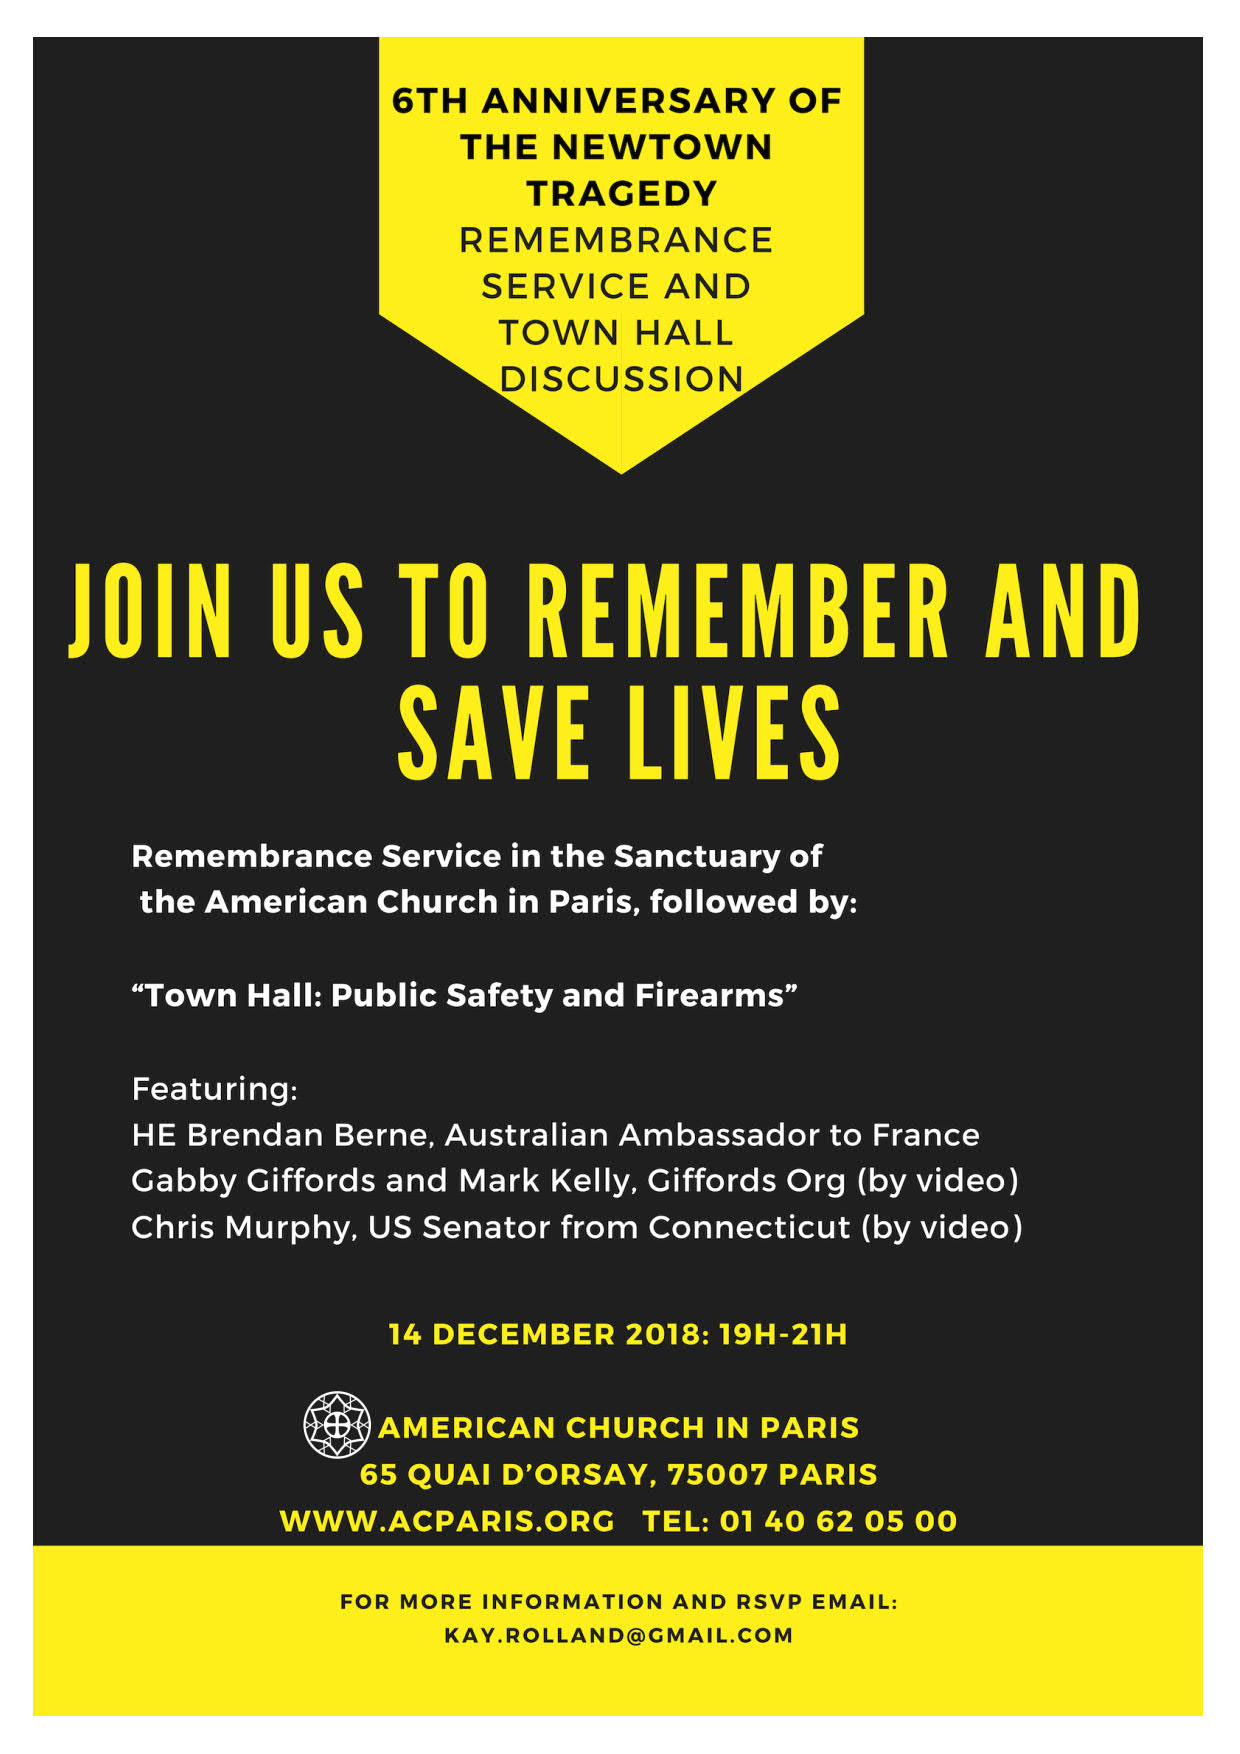 Paris Newtown Commemoration Service: 14 December, 17h in the ACP Sanctuary